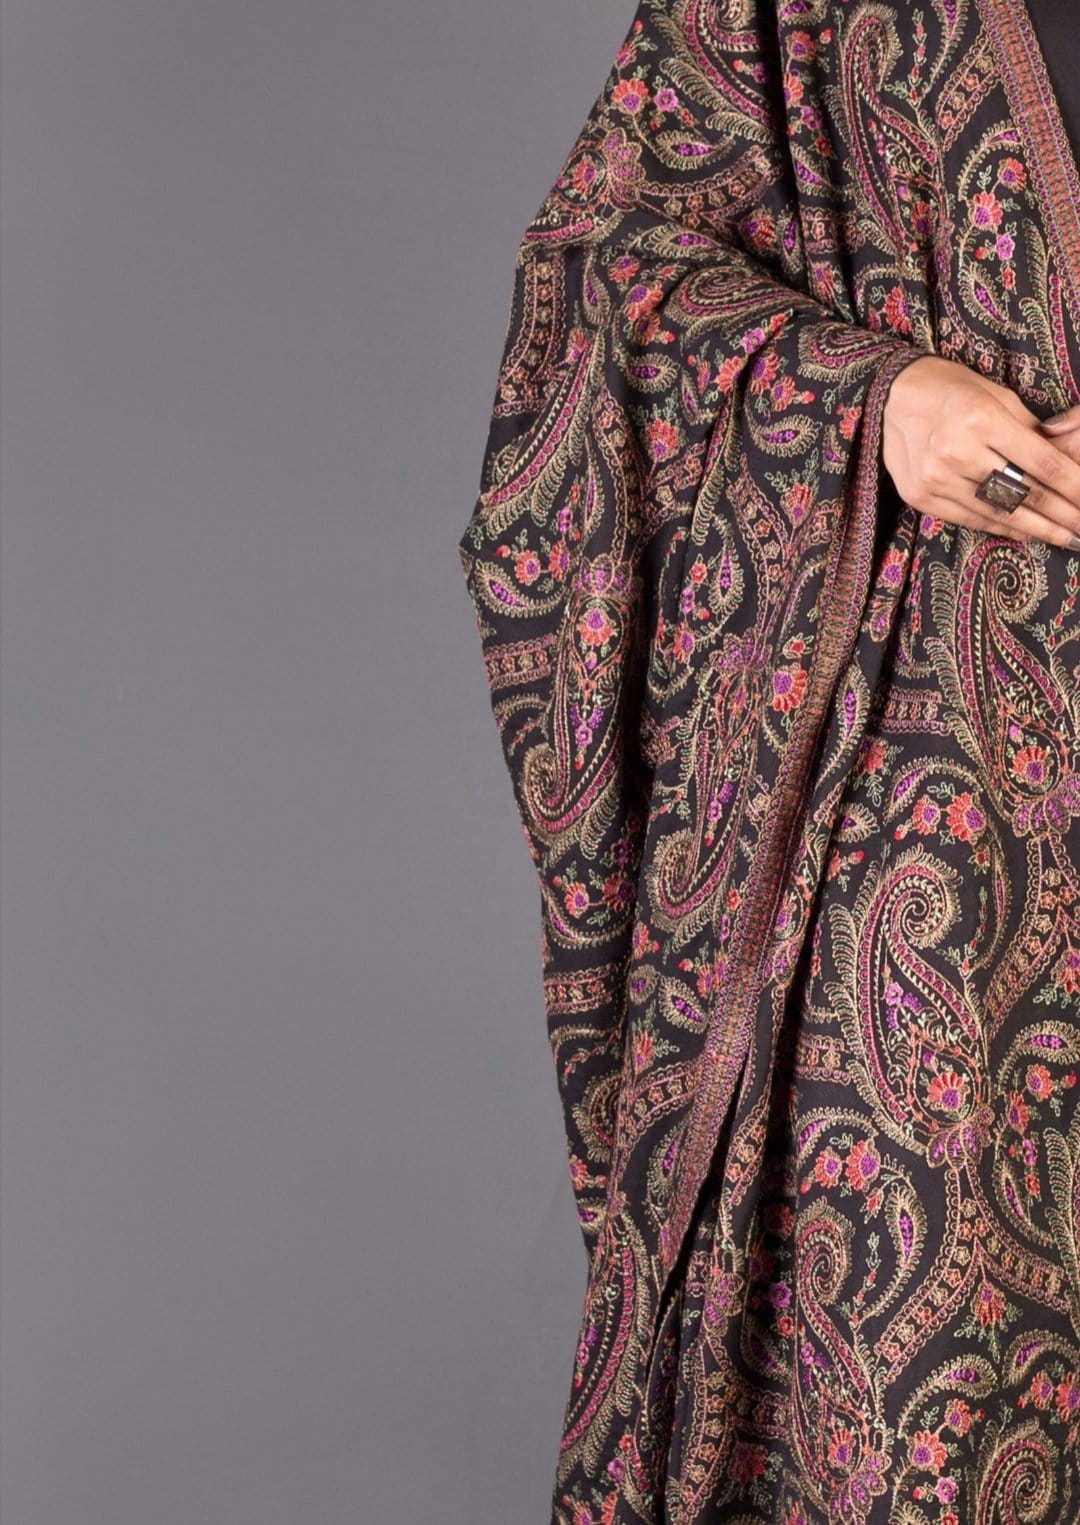 Sarinnah D29-Formal heavy Embroidered Karandi Lawn Shawl